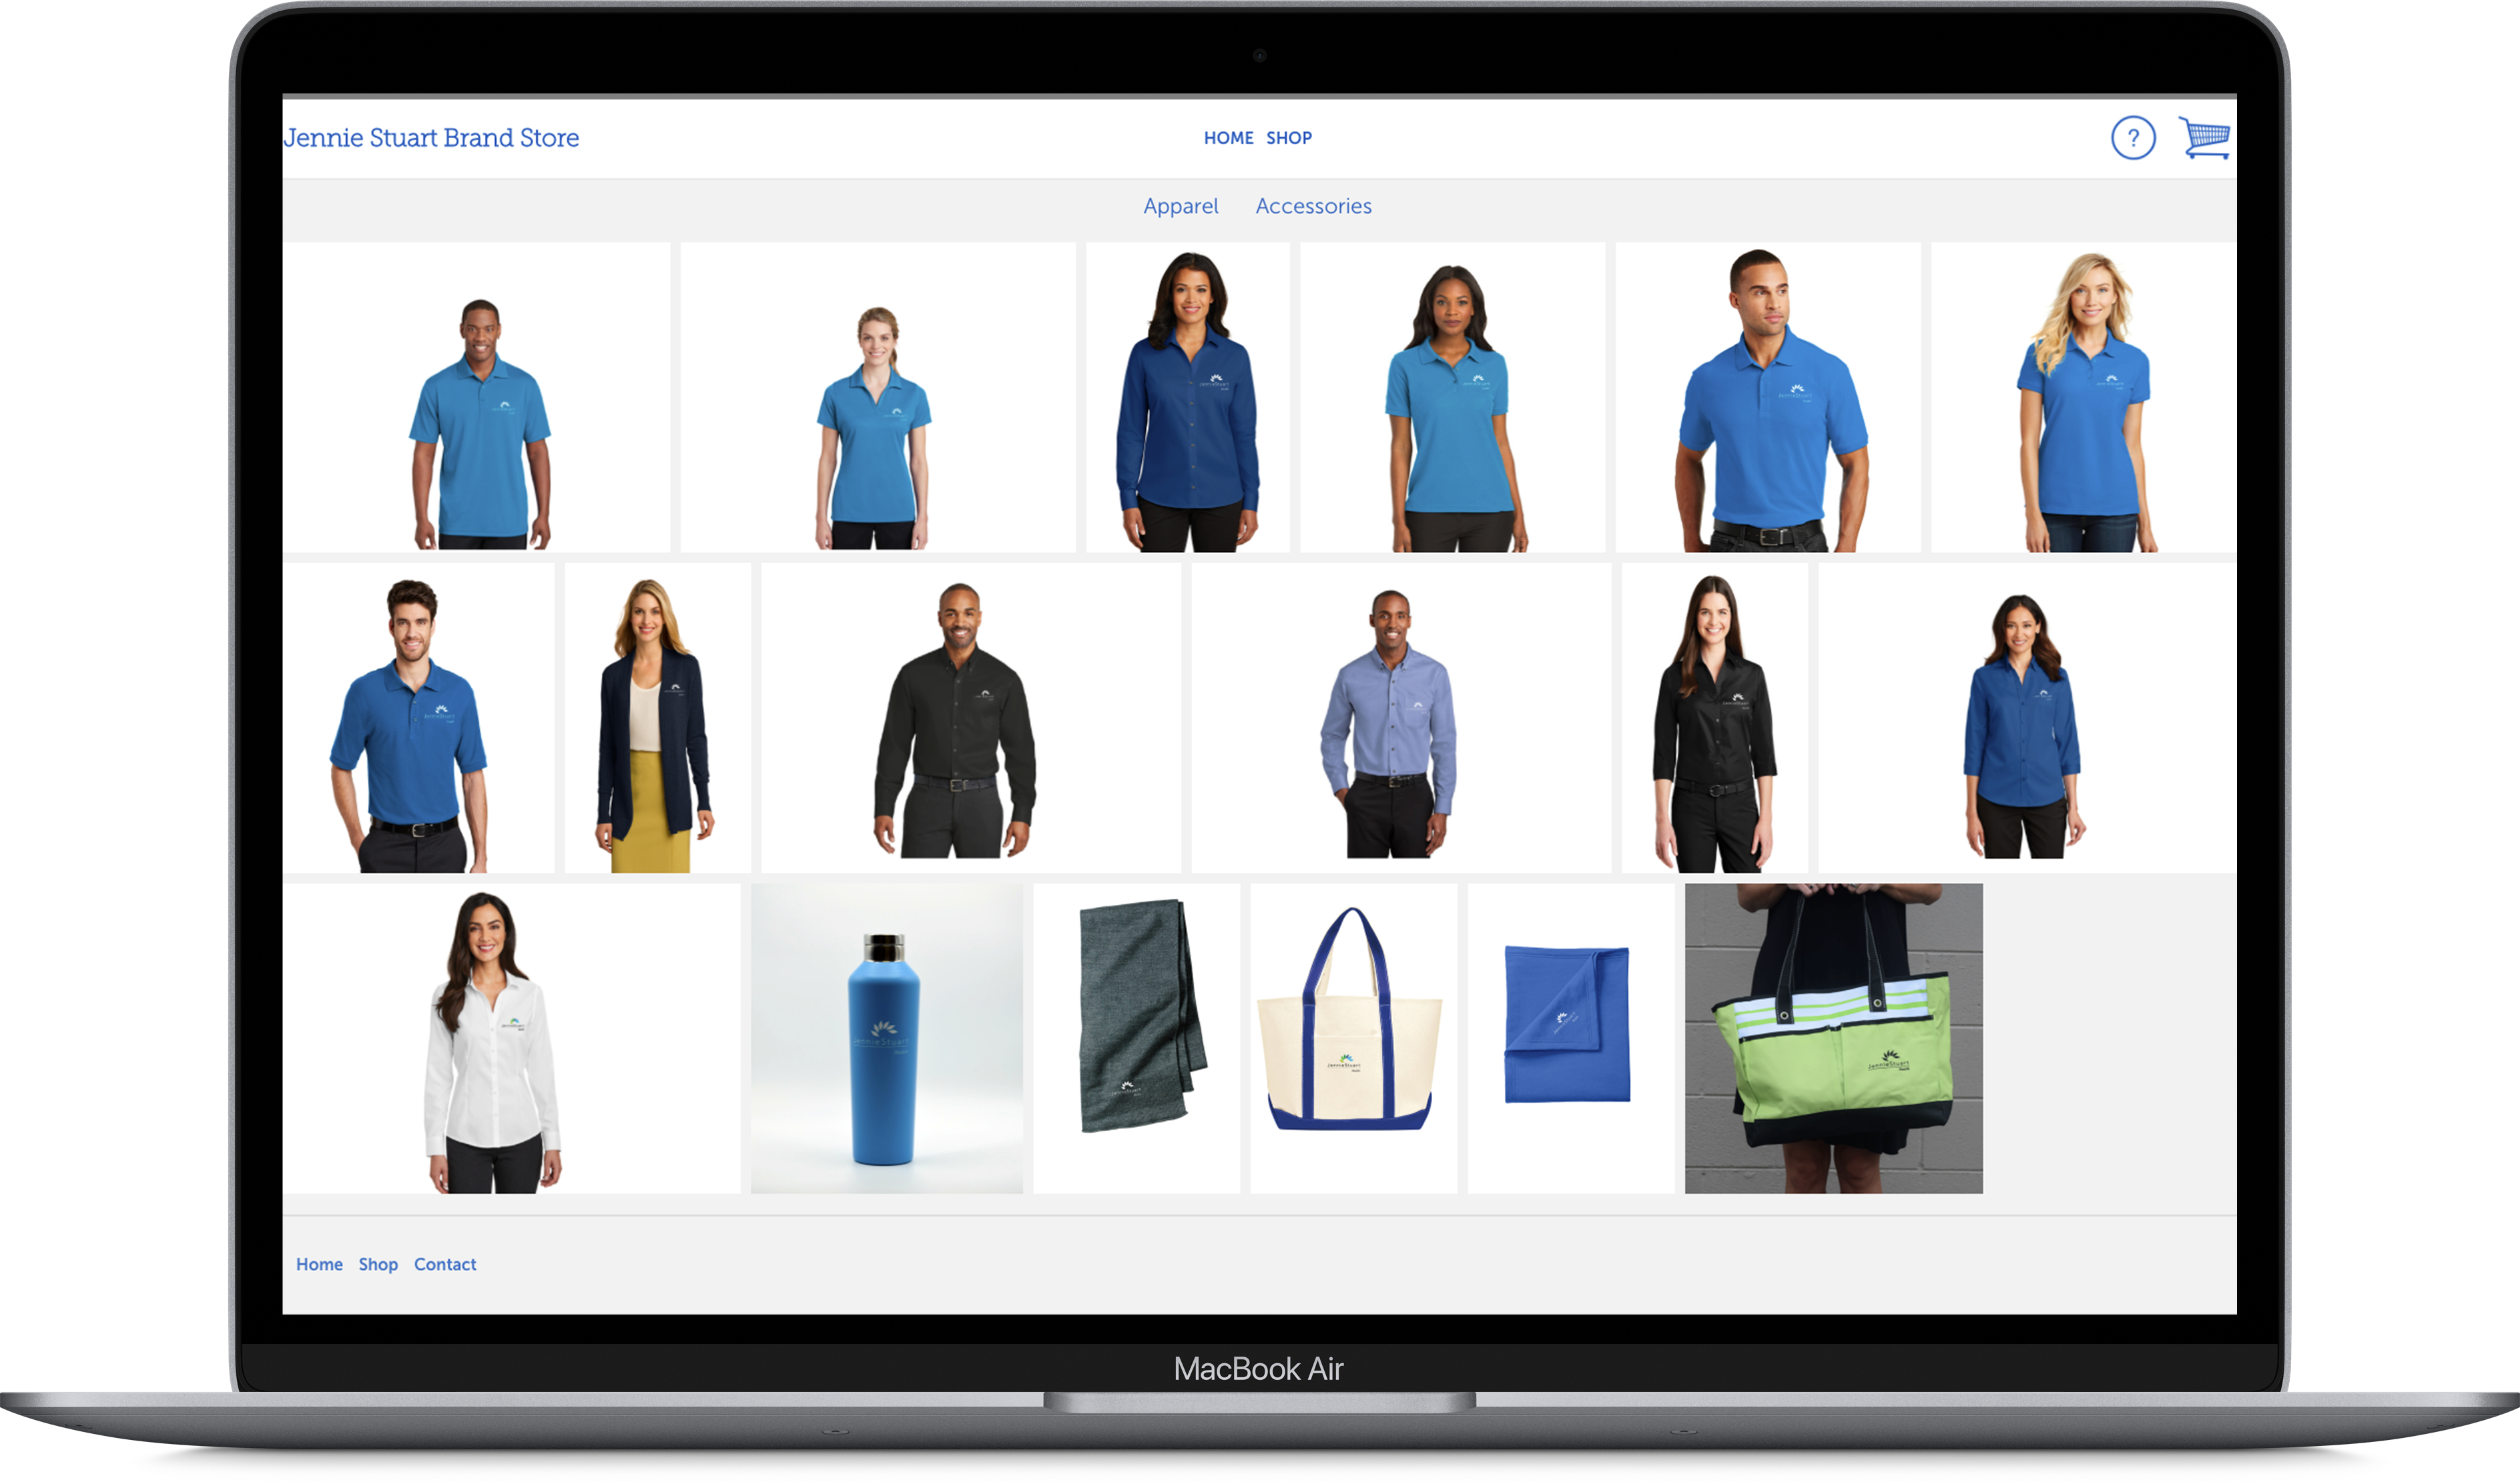 Corporate Online Store for Branded Merchandise